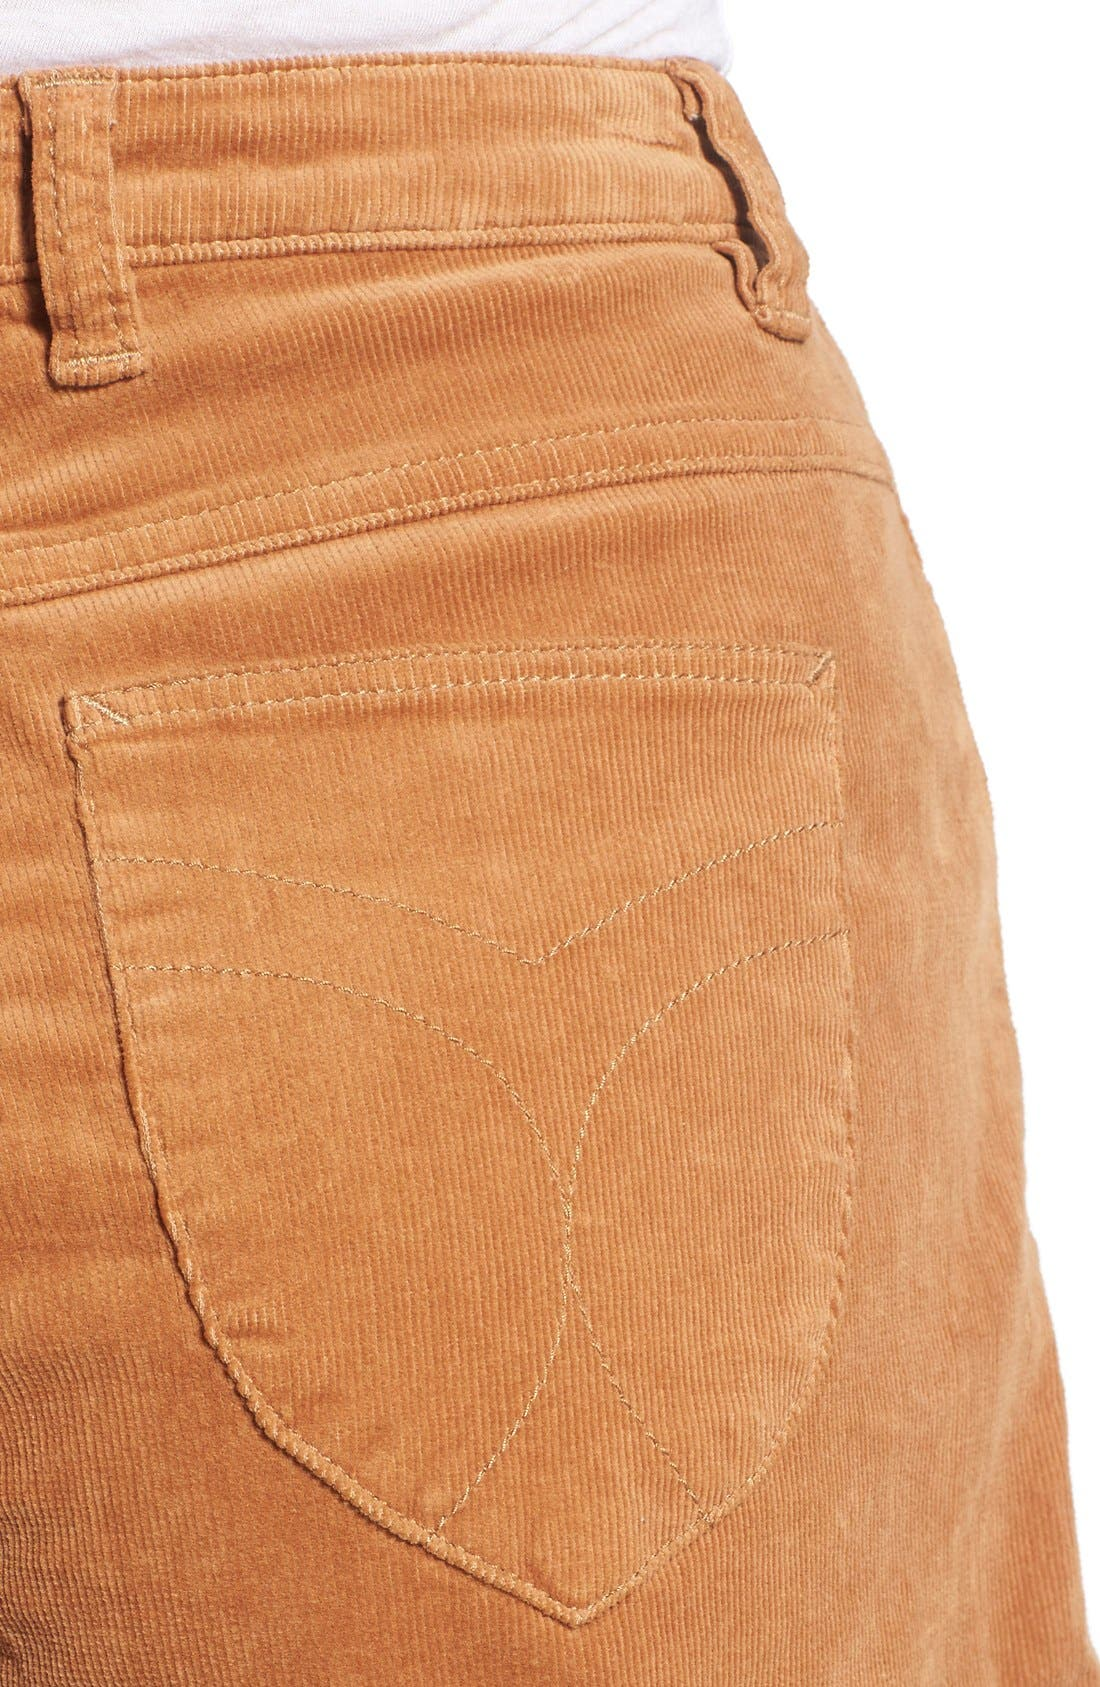 Corduroy Roll Cuff Shorts,                             Alternate thumbnail 3, color,                             200